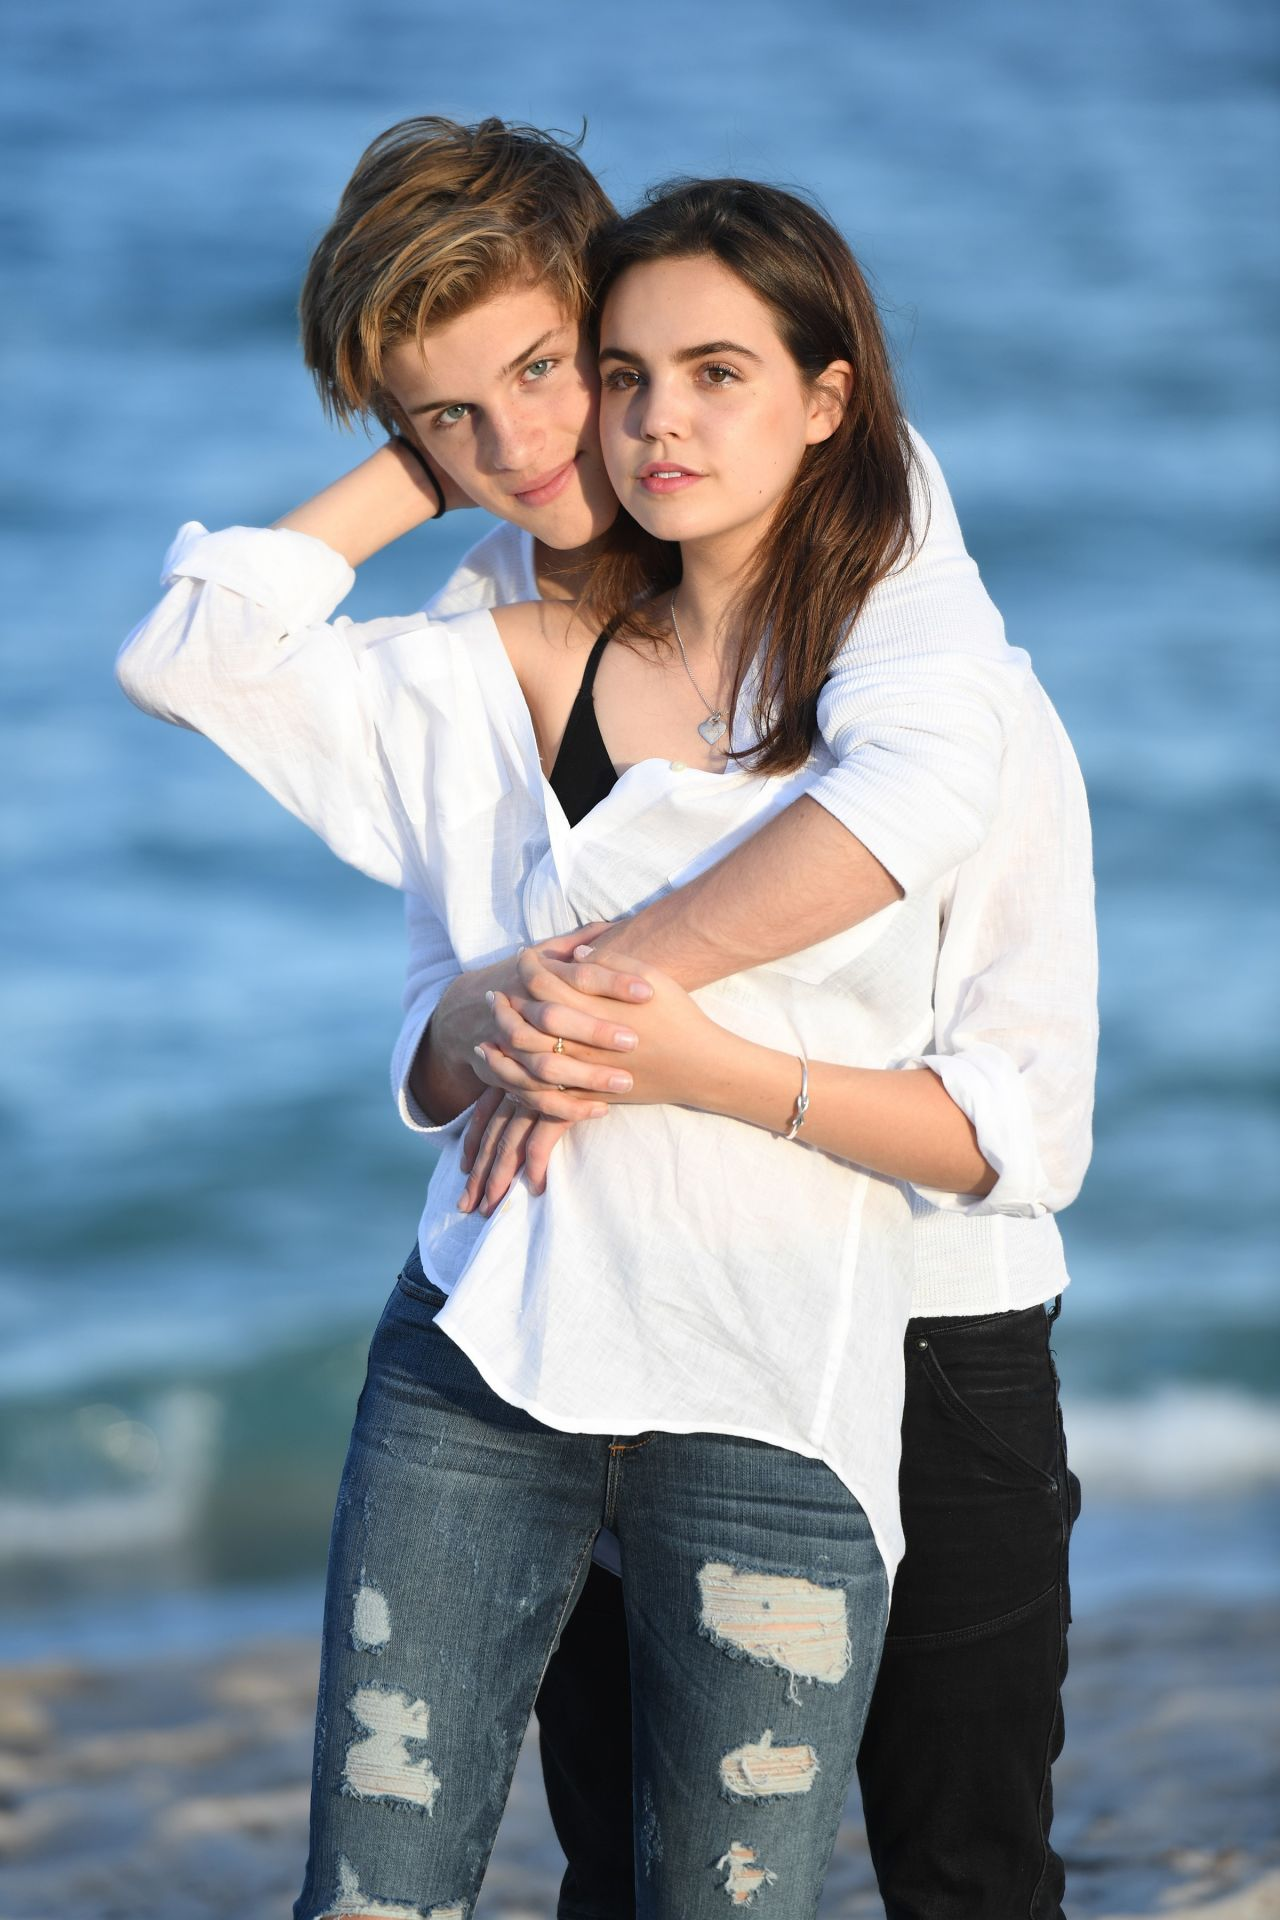 Celebrity couples at the beach